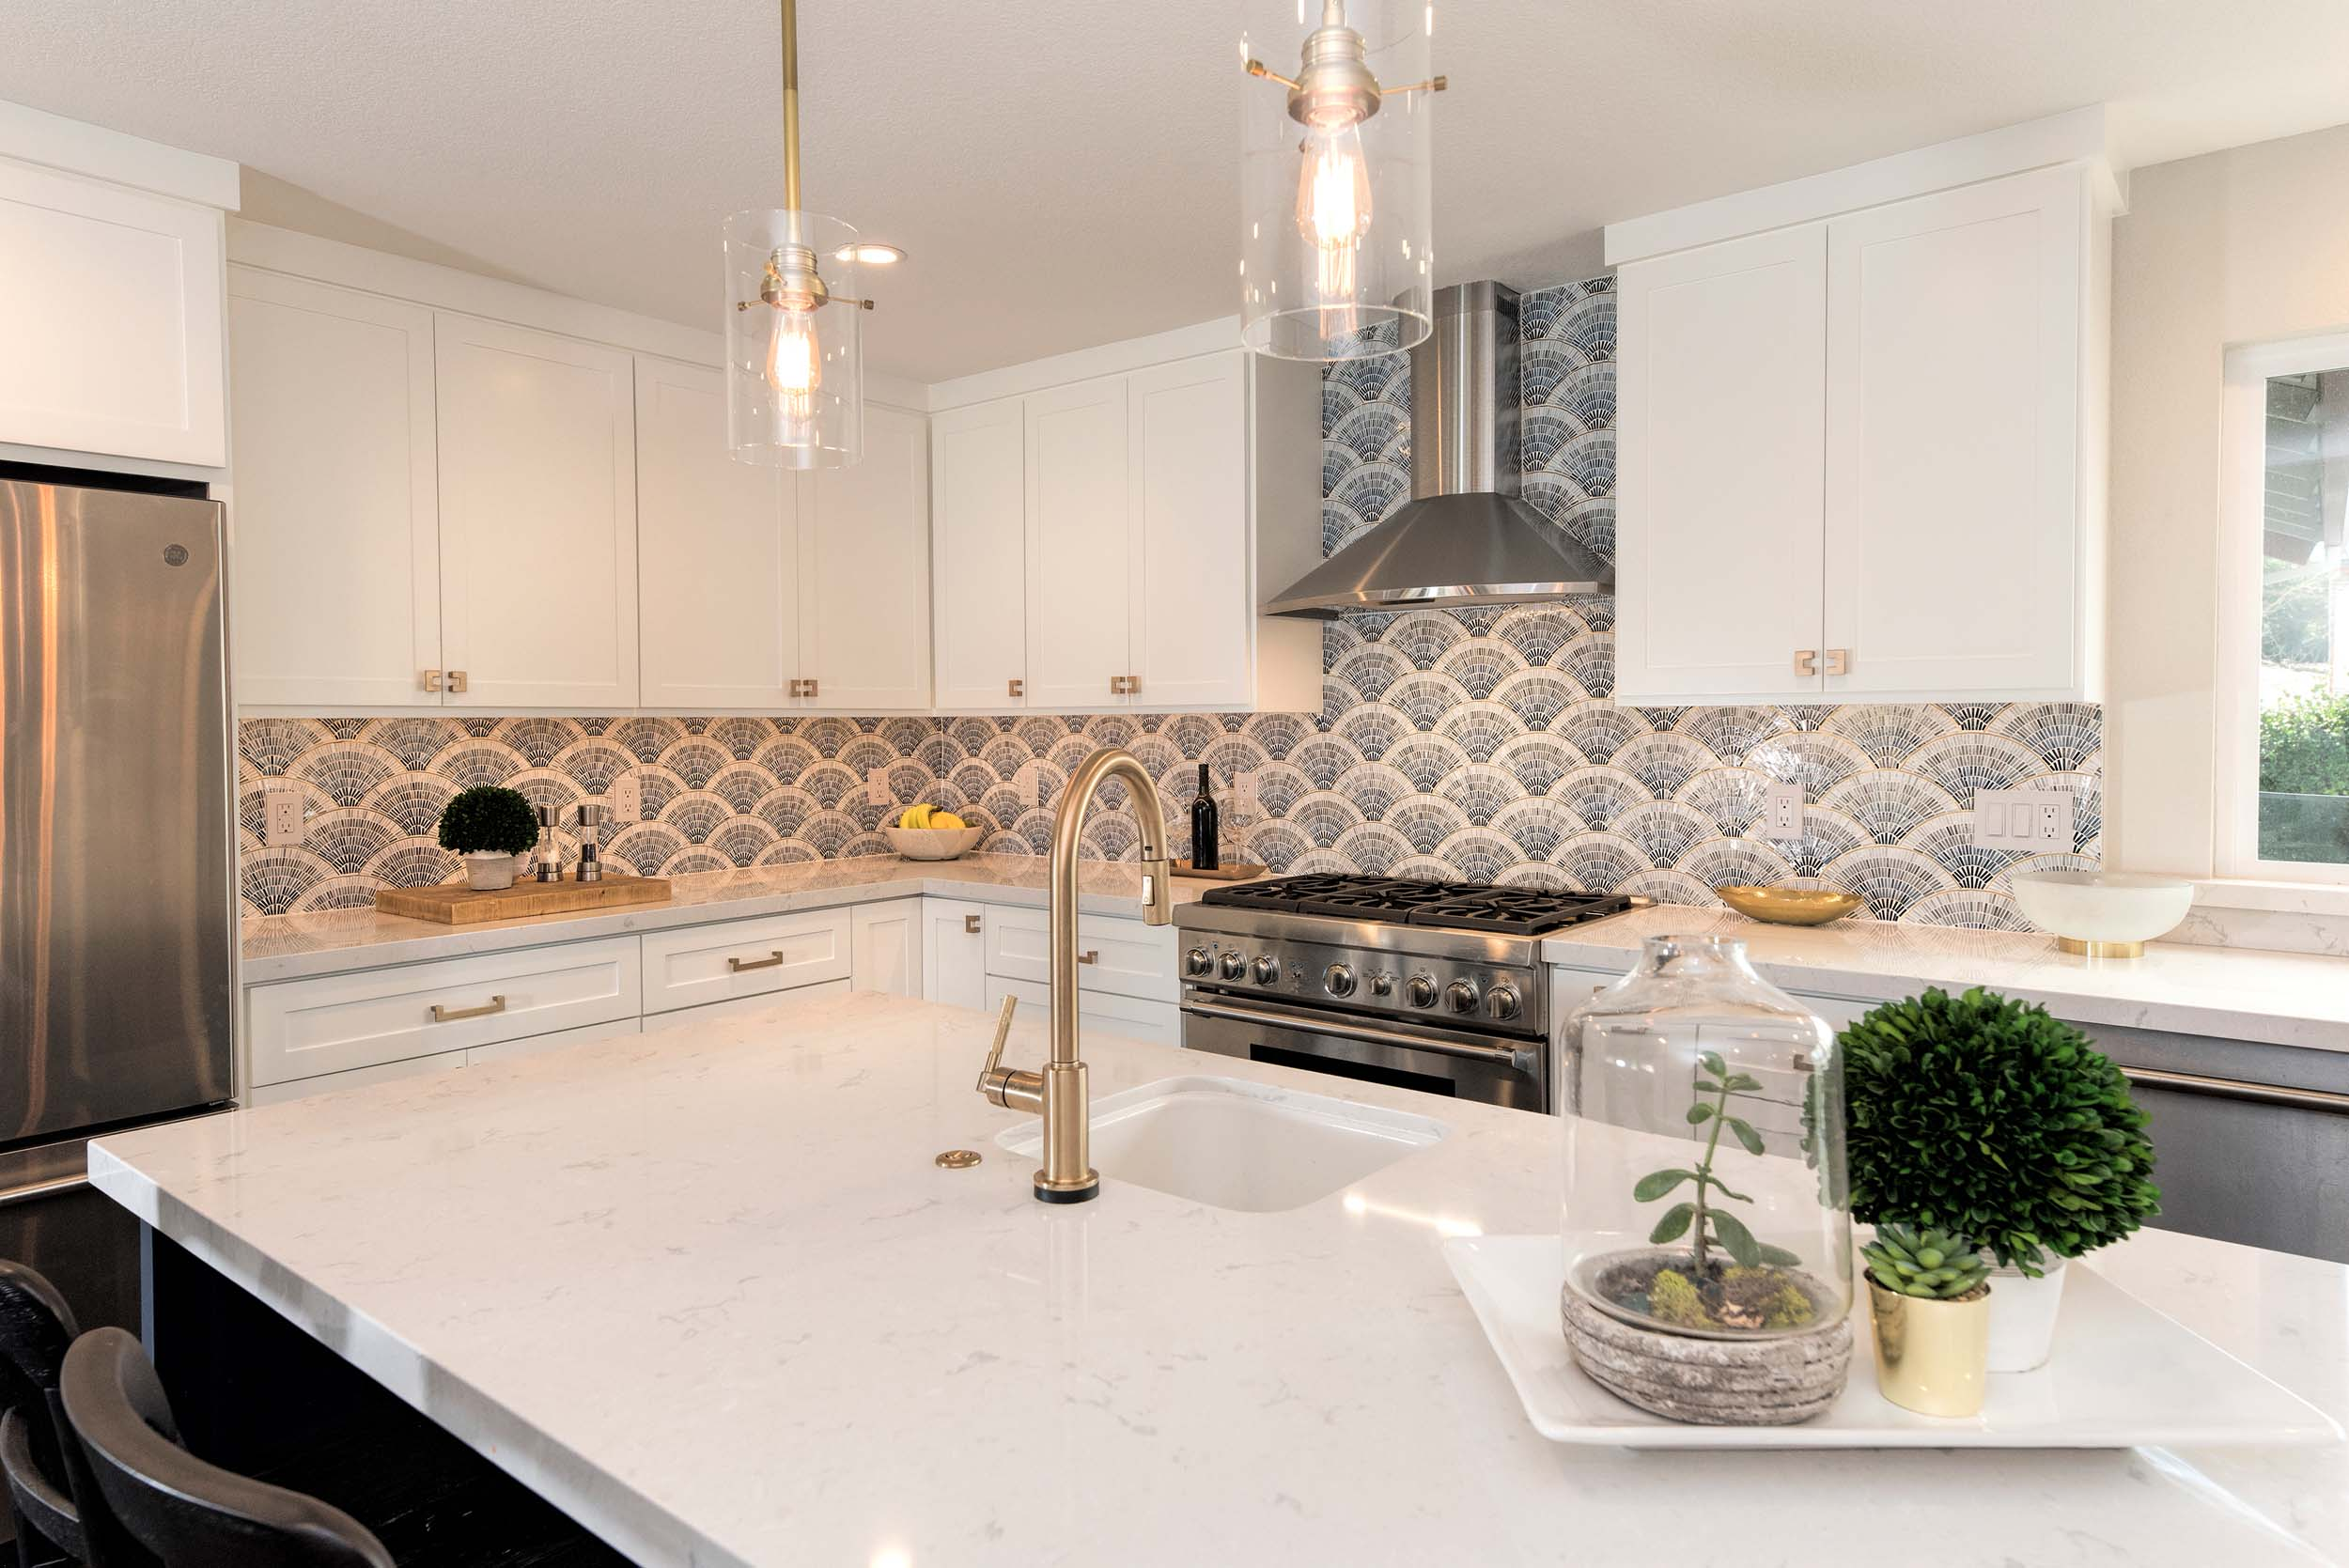 Kitchen with center island, faucet, granite countertop, exhaust hood and white wooden cabinet